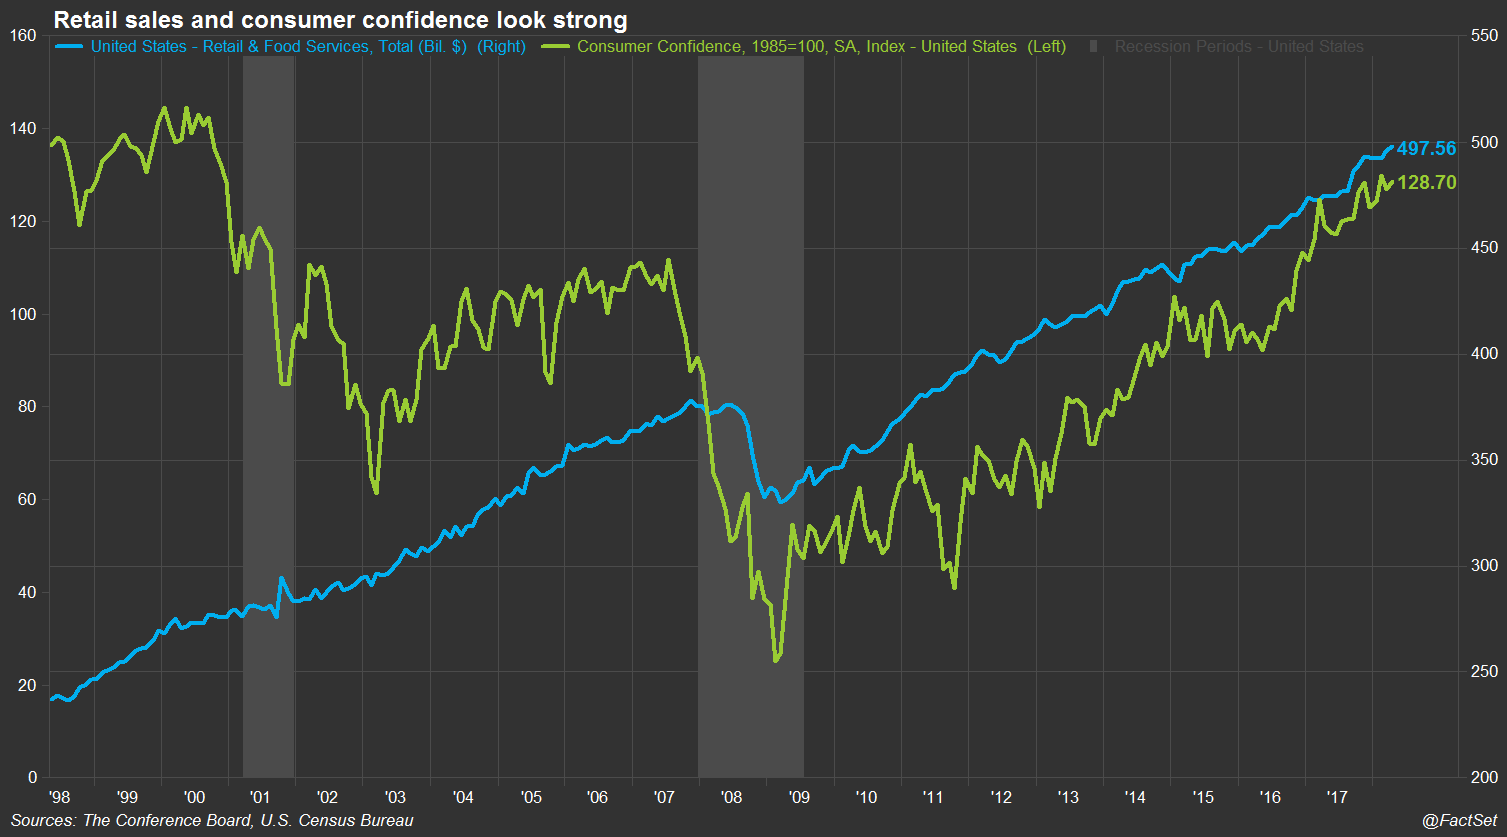 Retail sales and consumer confidence